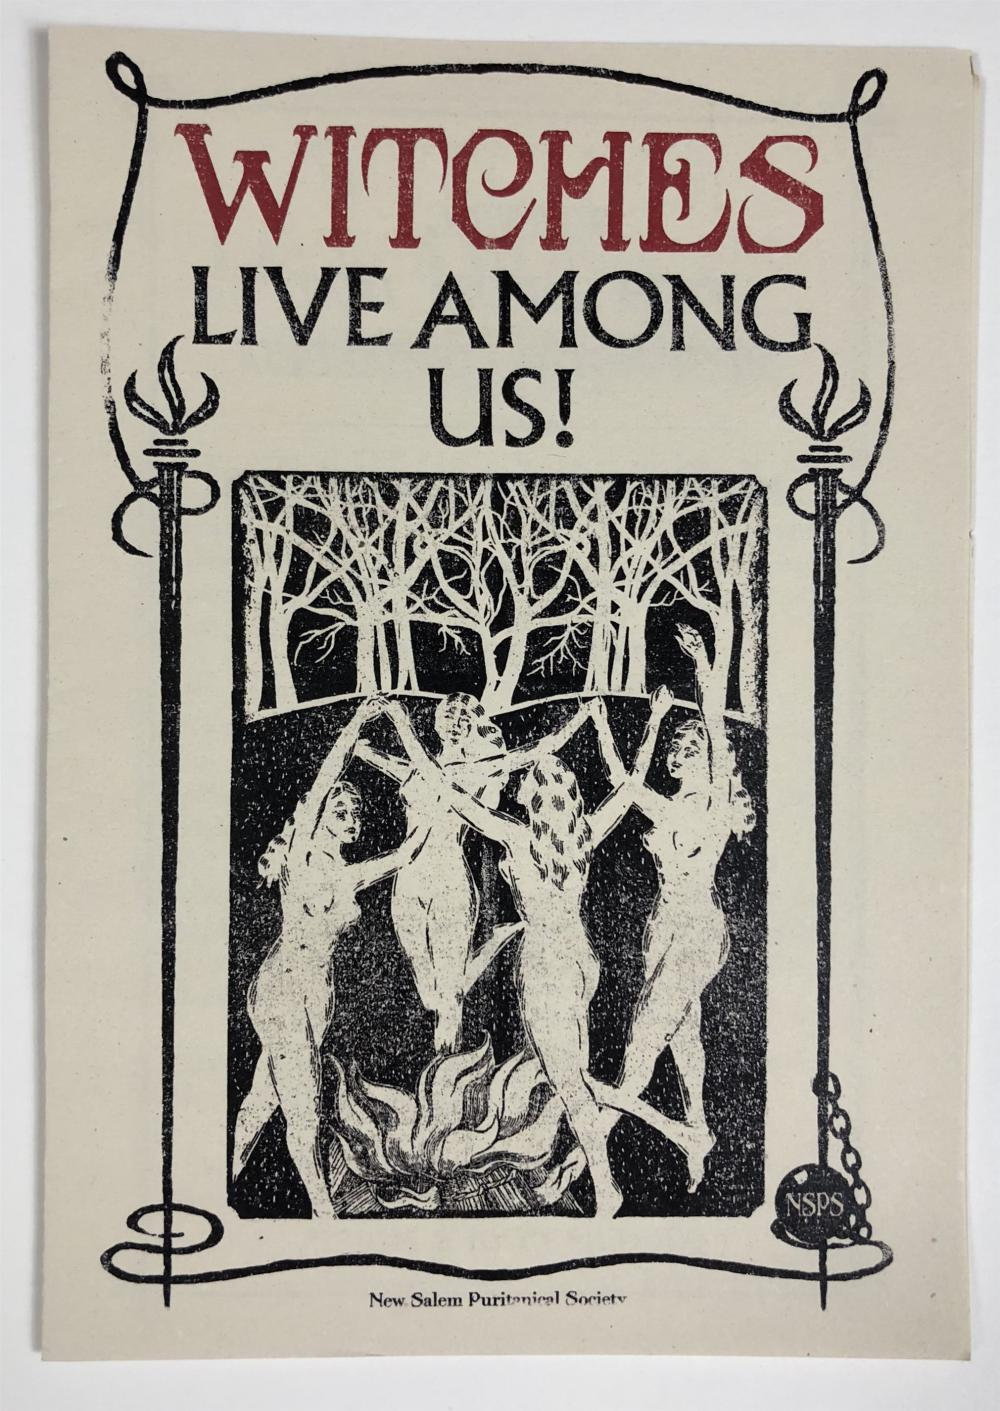 """Lot 88: Fantastic Beasts and Where to Find Them (2016) - """"Witches Live Among Us!"""" Pamphlet - Lot A"""